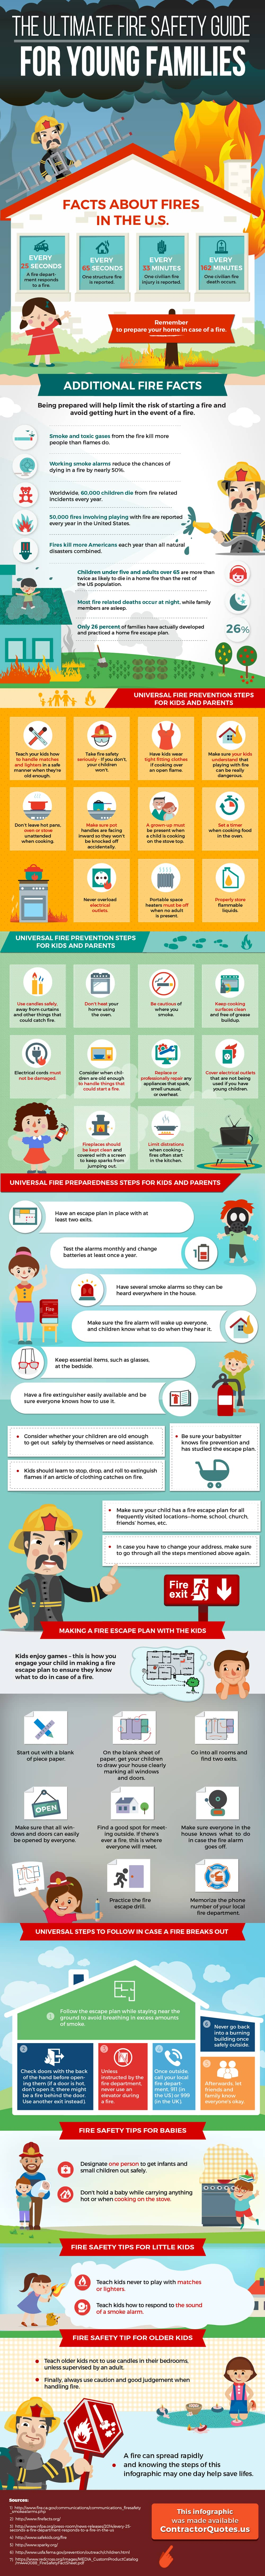 fire-safety-for-kids-infographic.jpg